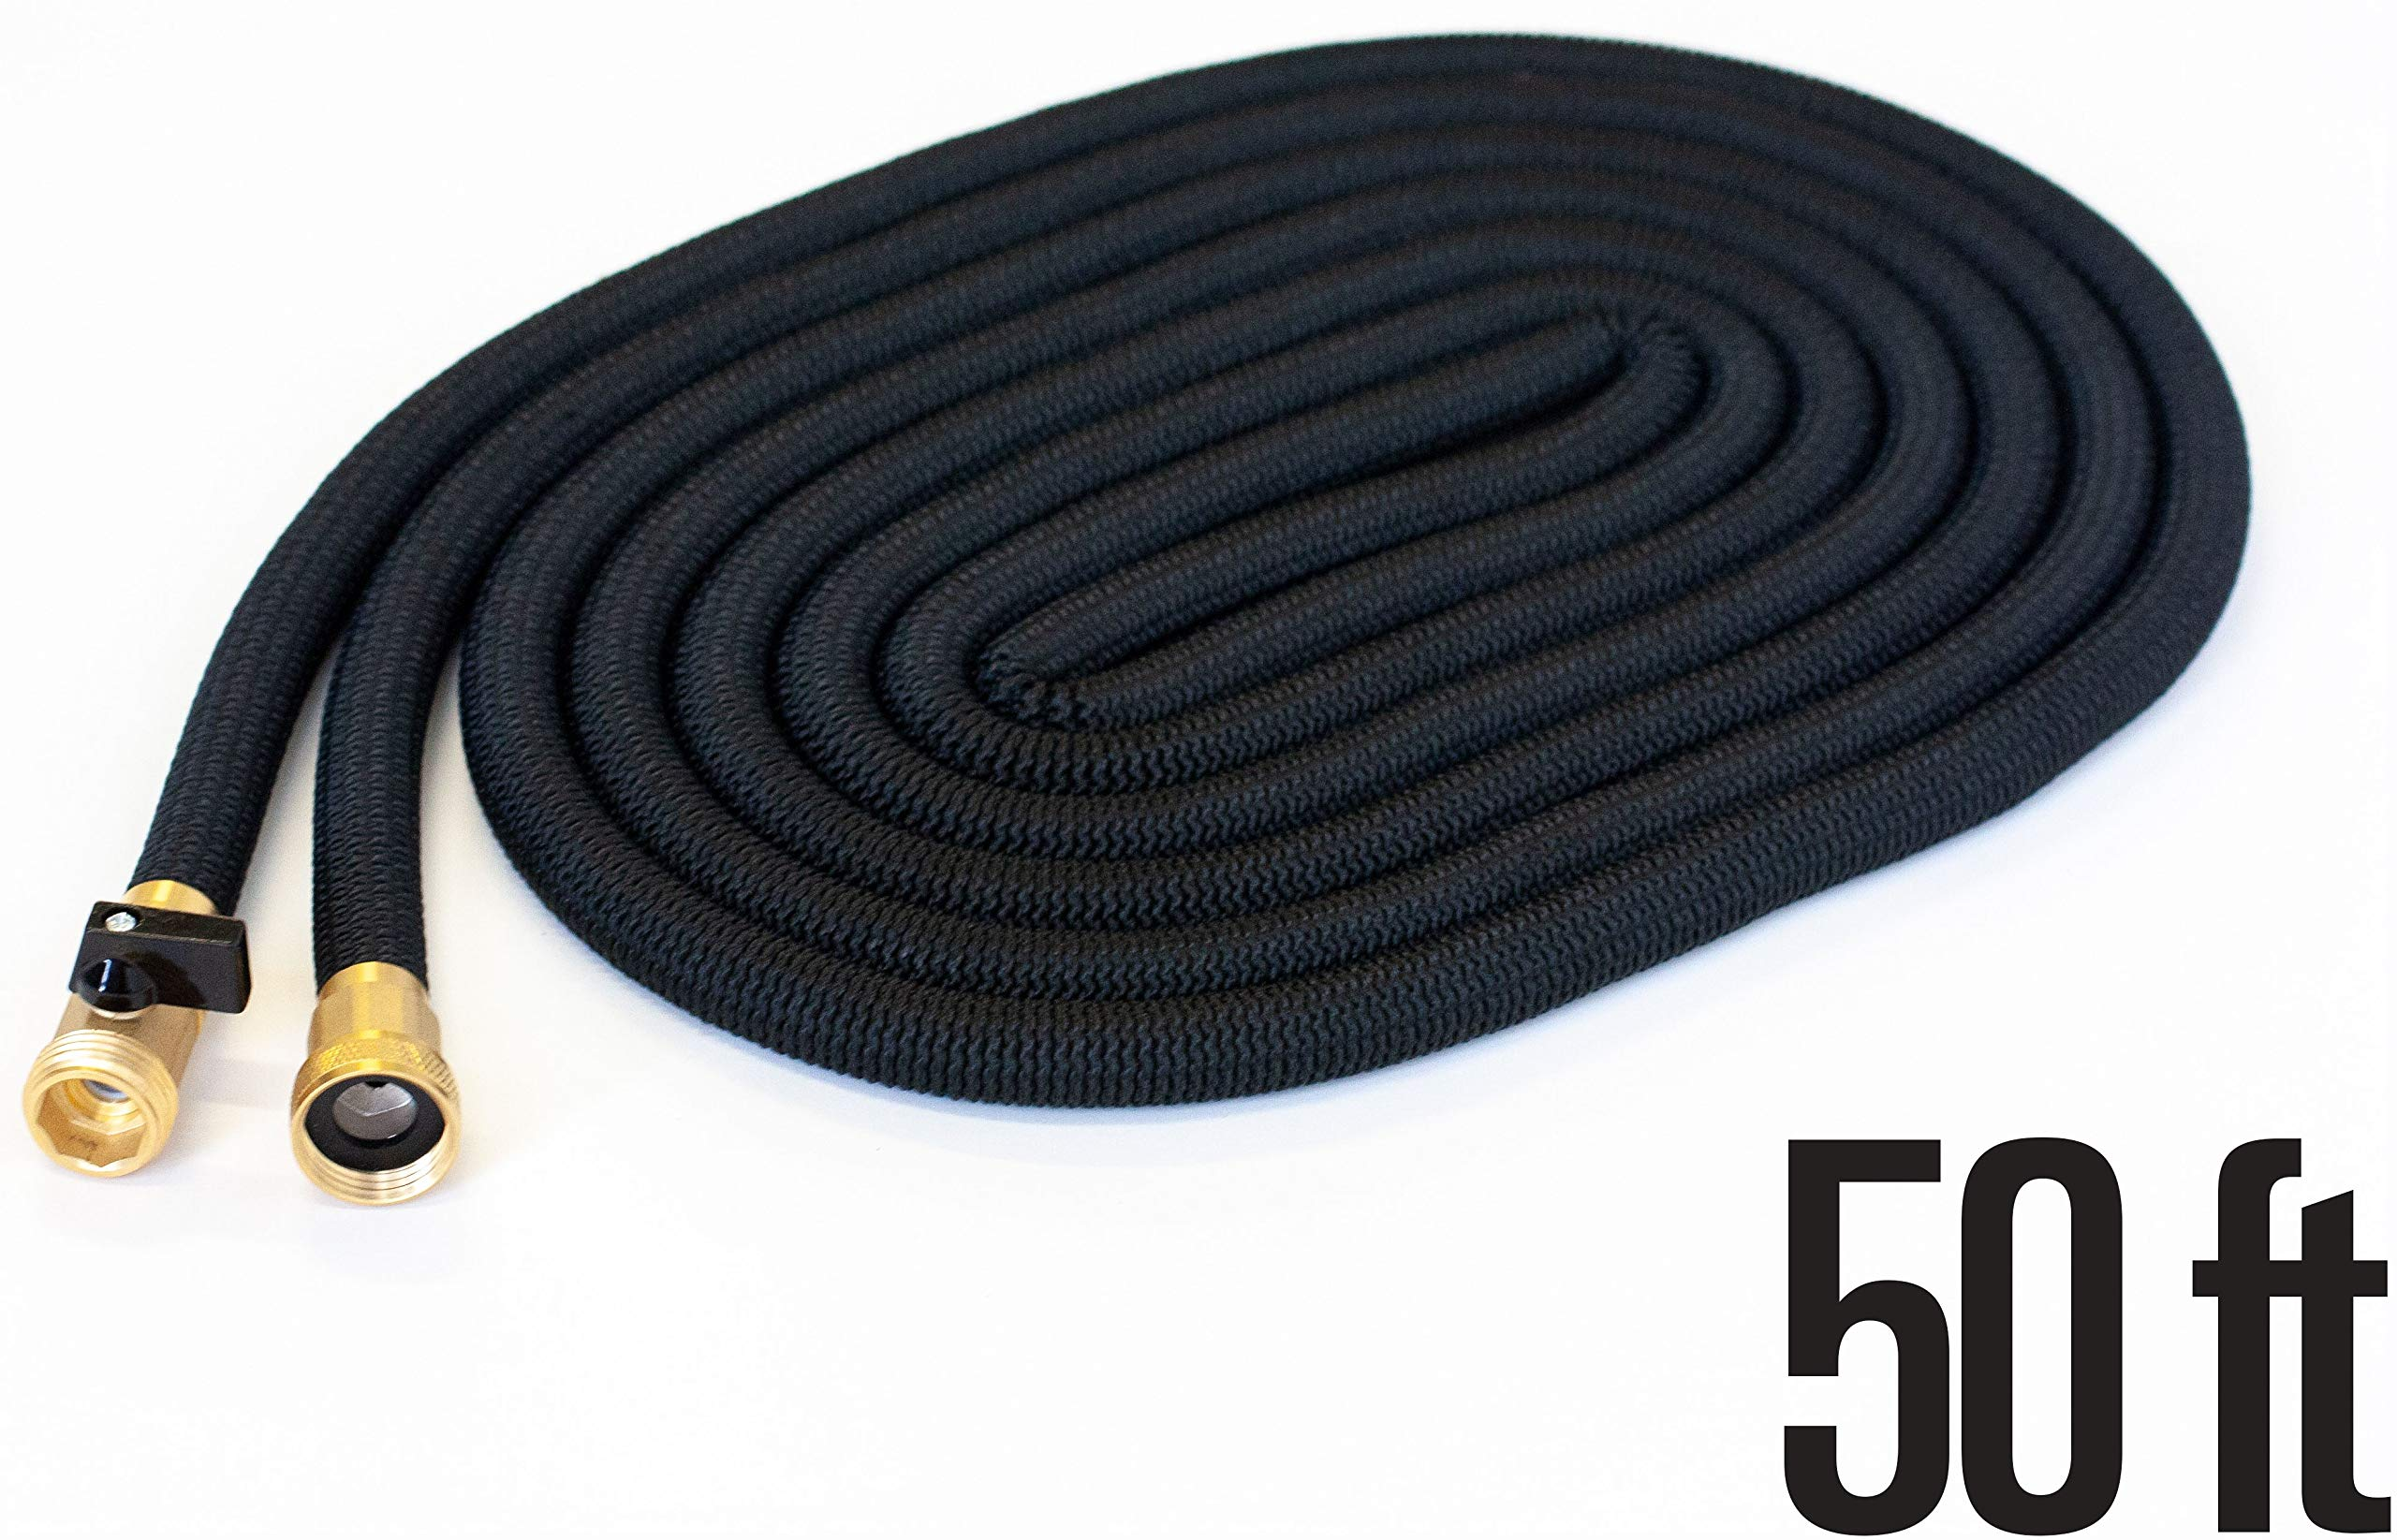 Amazing Stretch 50FT Expandable Garden Hose Heavy Duty, Durable Expanding Water Hose with Solid Brass Fitting for Watering Garden/Lawn/Yard, Washing Car, Outdoor Cleaning + Free Storage Bag – Black